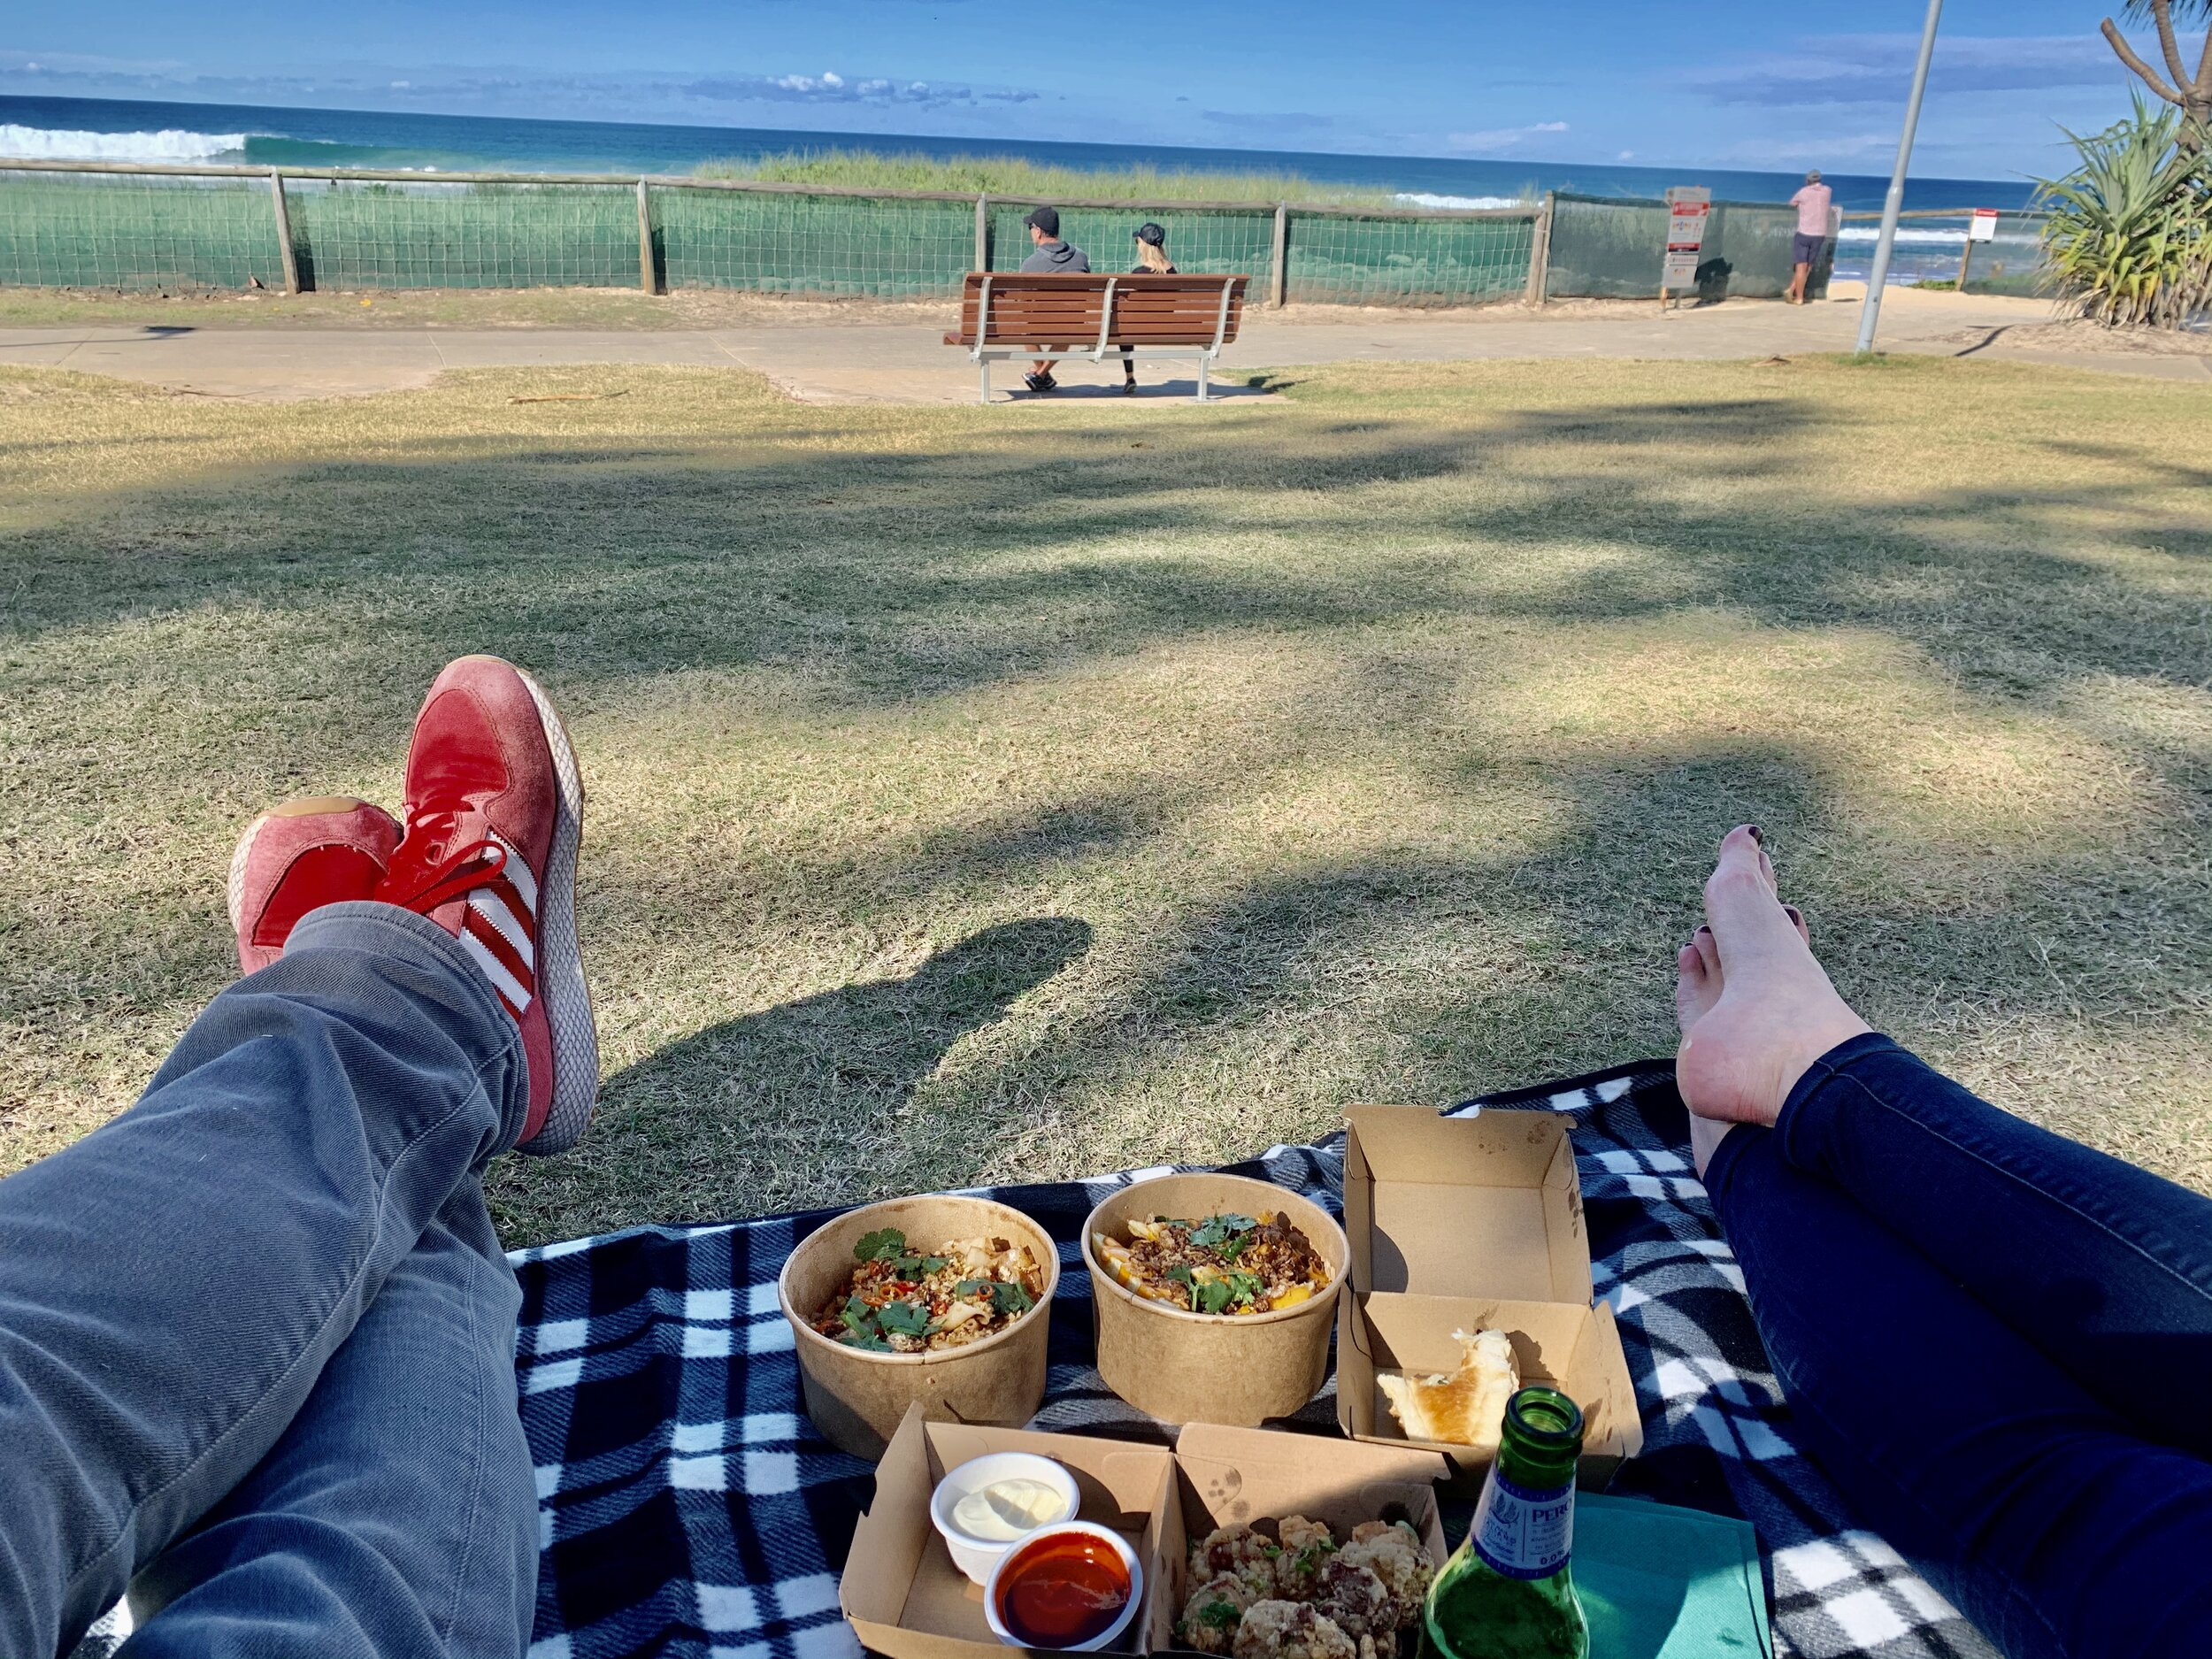 Two people picnic at the beach